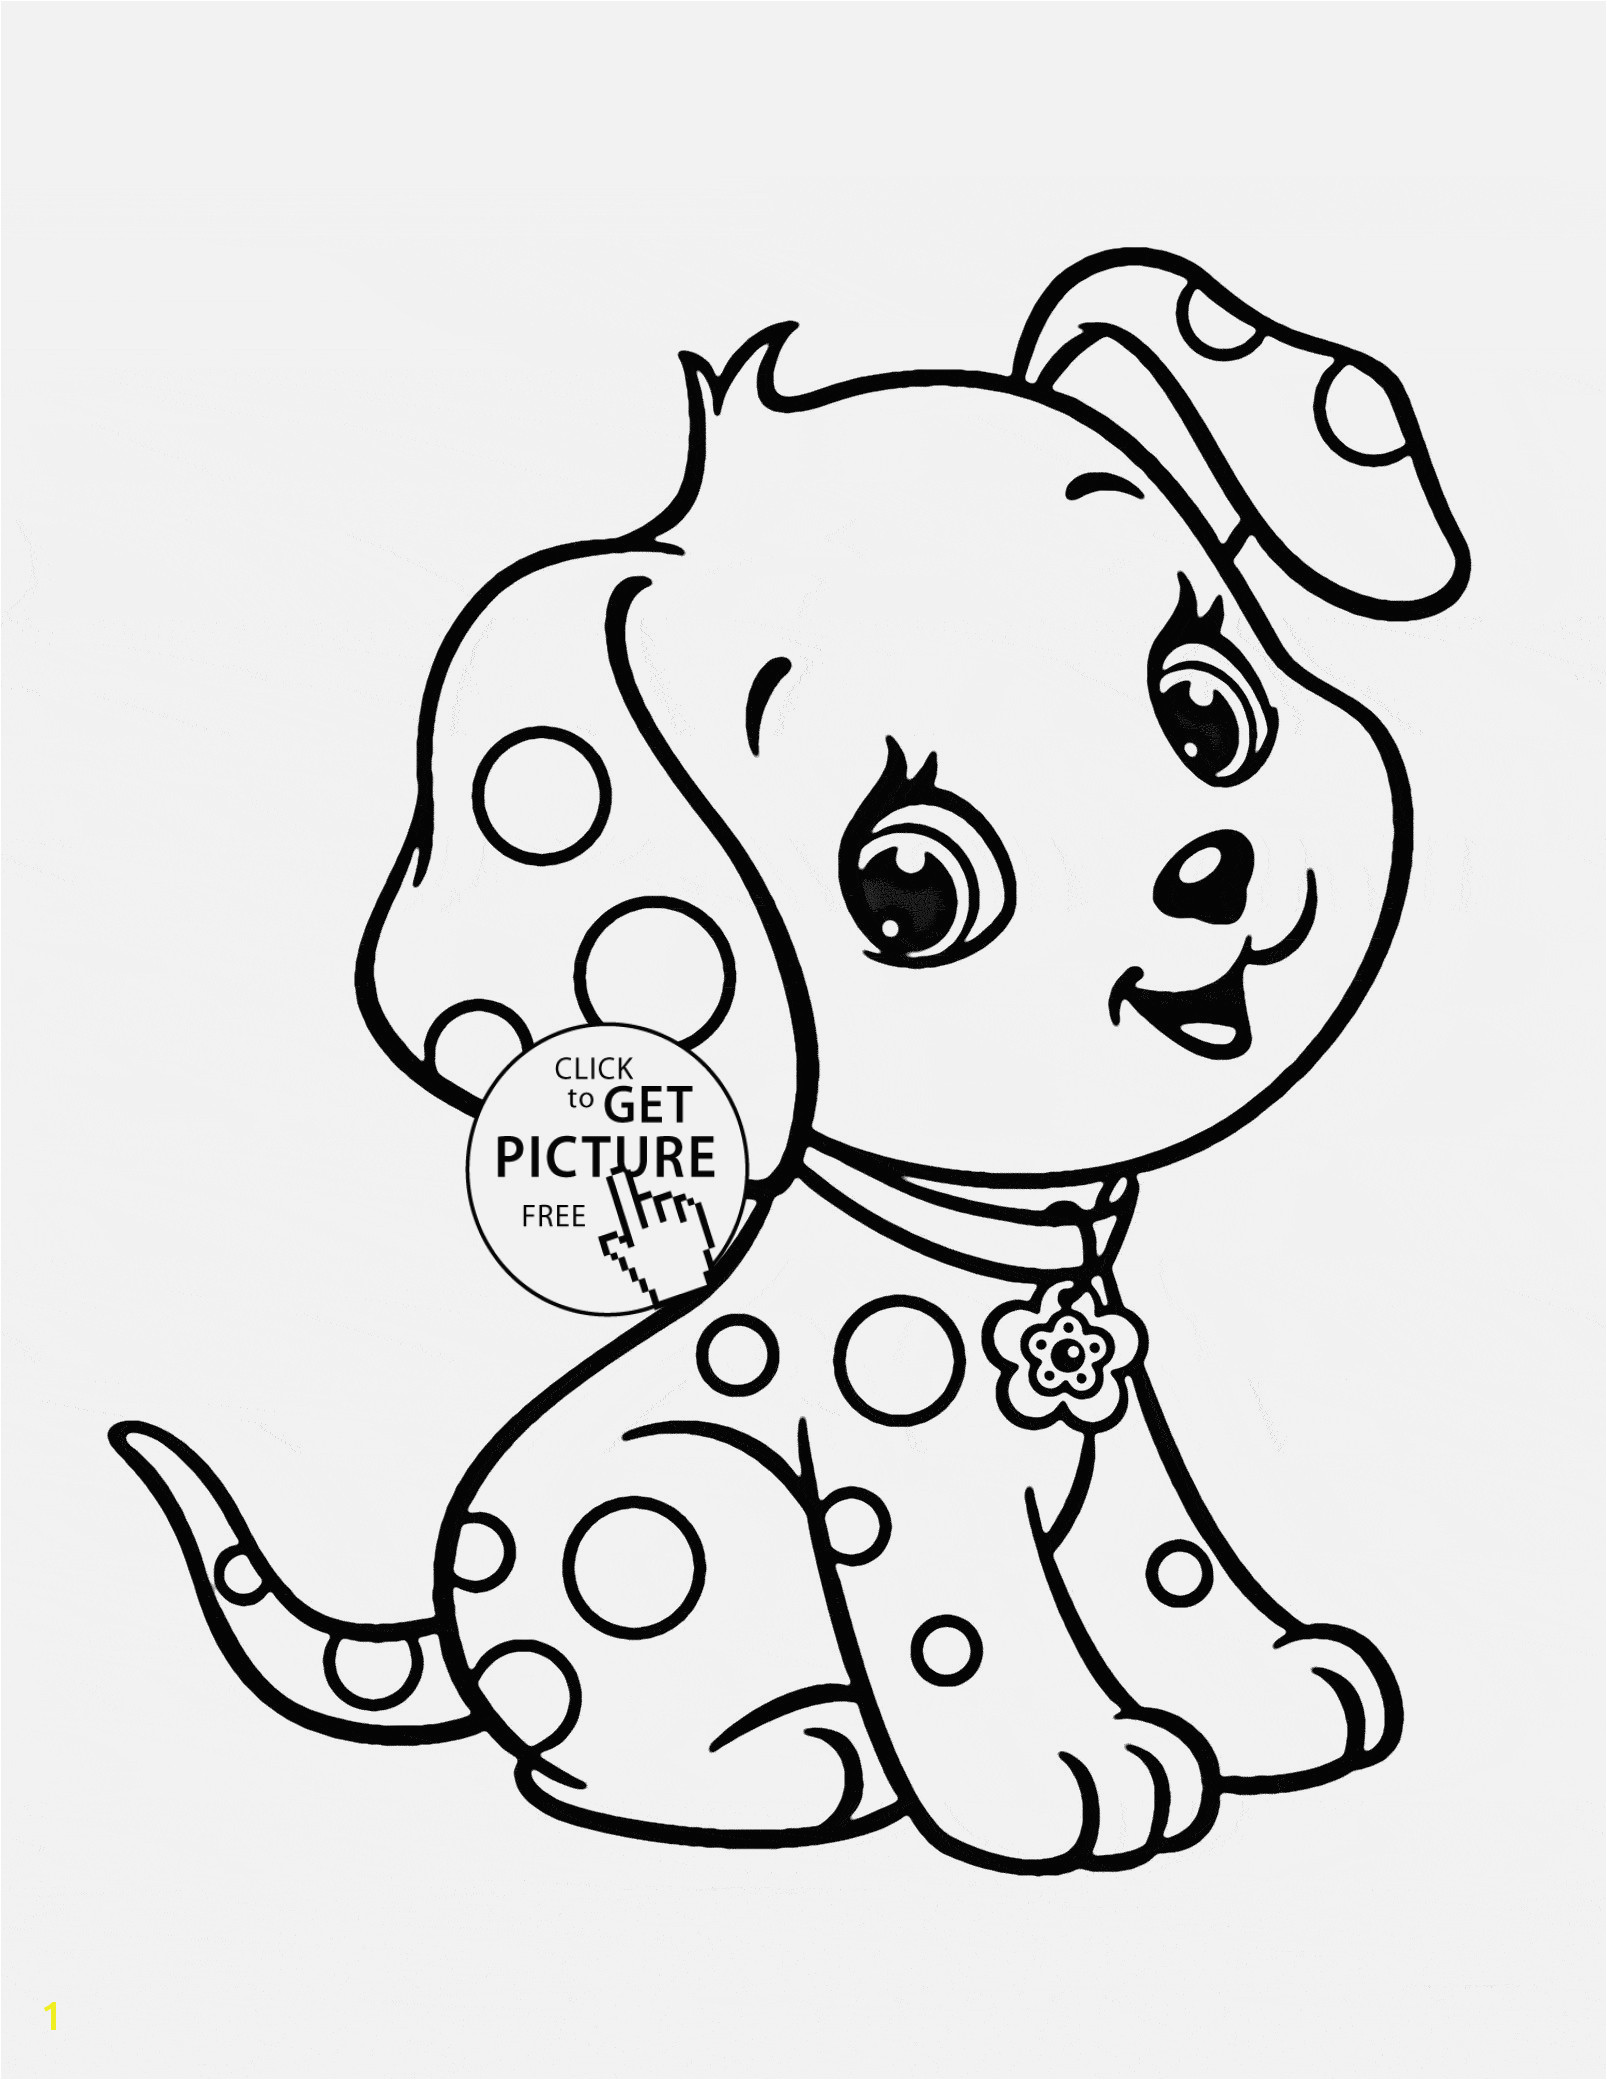 Coloring Pages Hard Amazing Advantages Animal Printables Luxury Unique Hard Animal Coloring Pages Ideas for